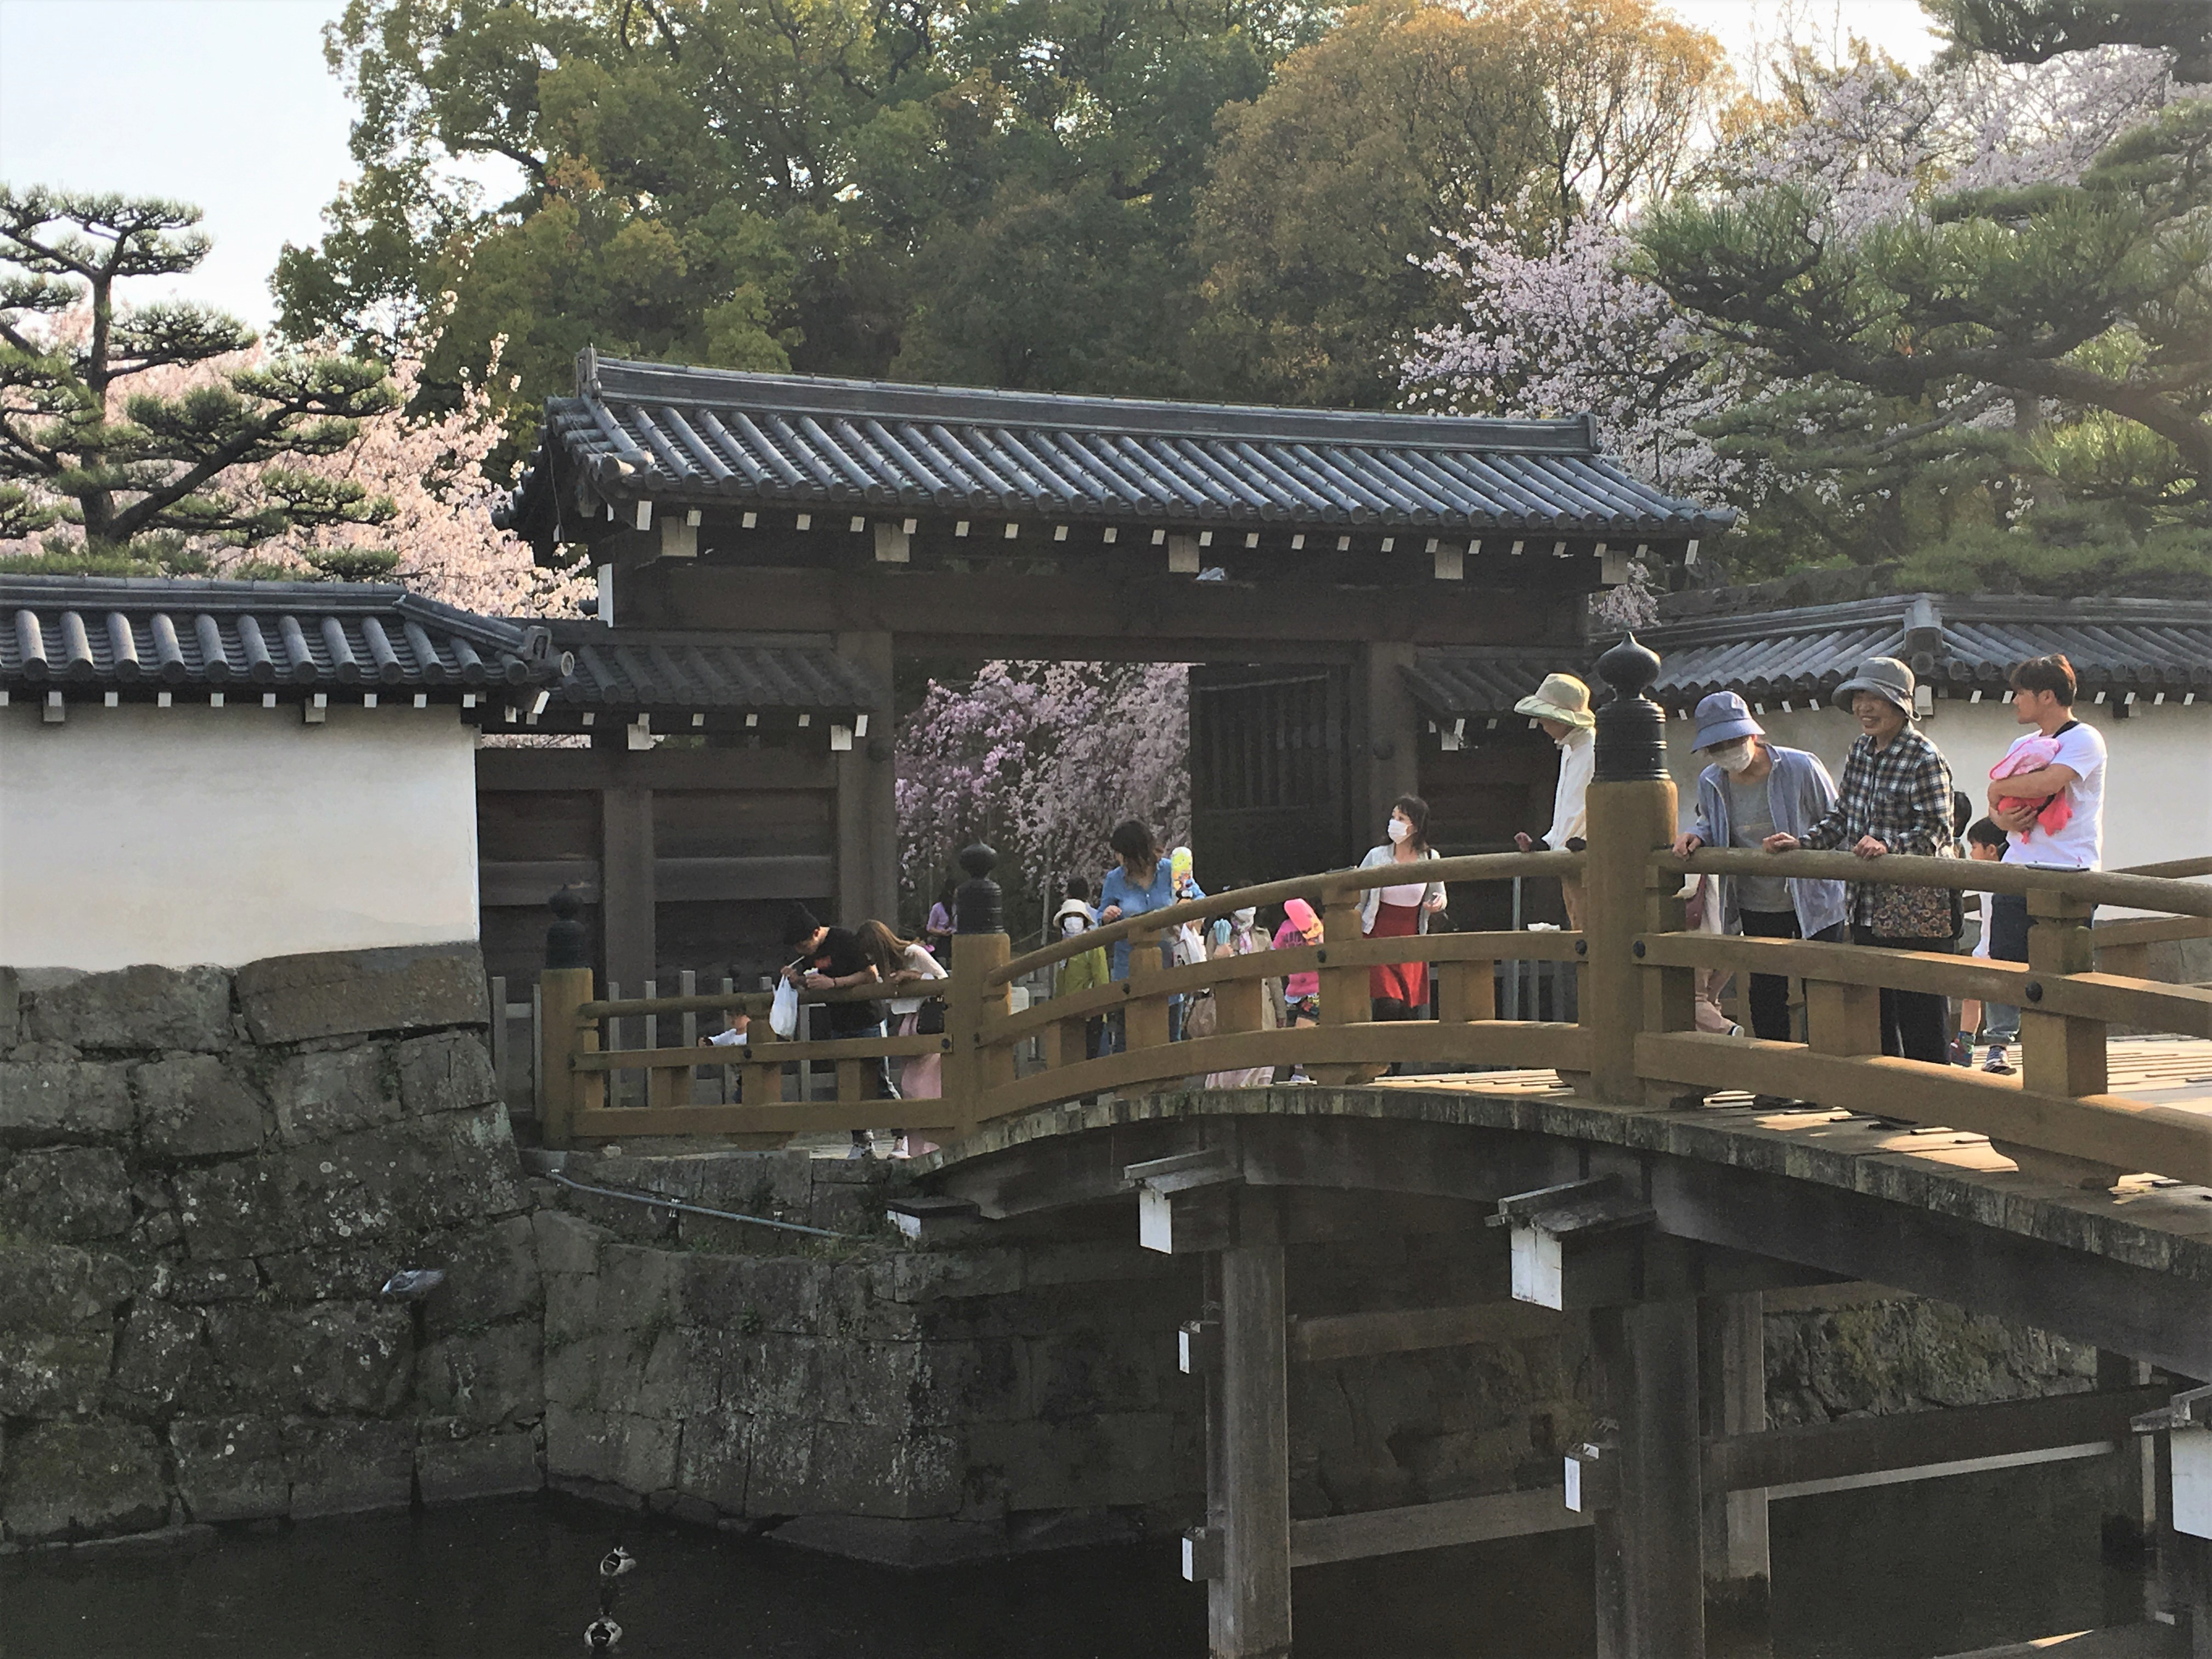 People entering throug wakayama castle's otemon gate surrounded by blooming cherry blossom